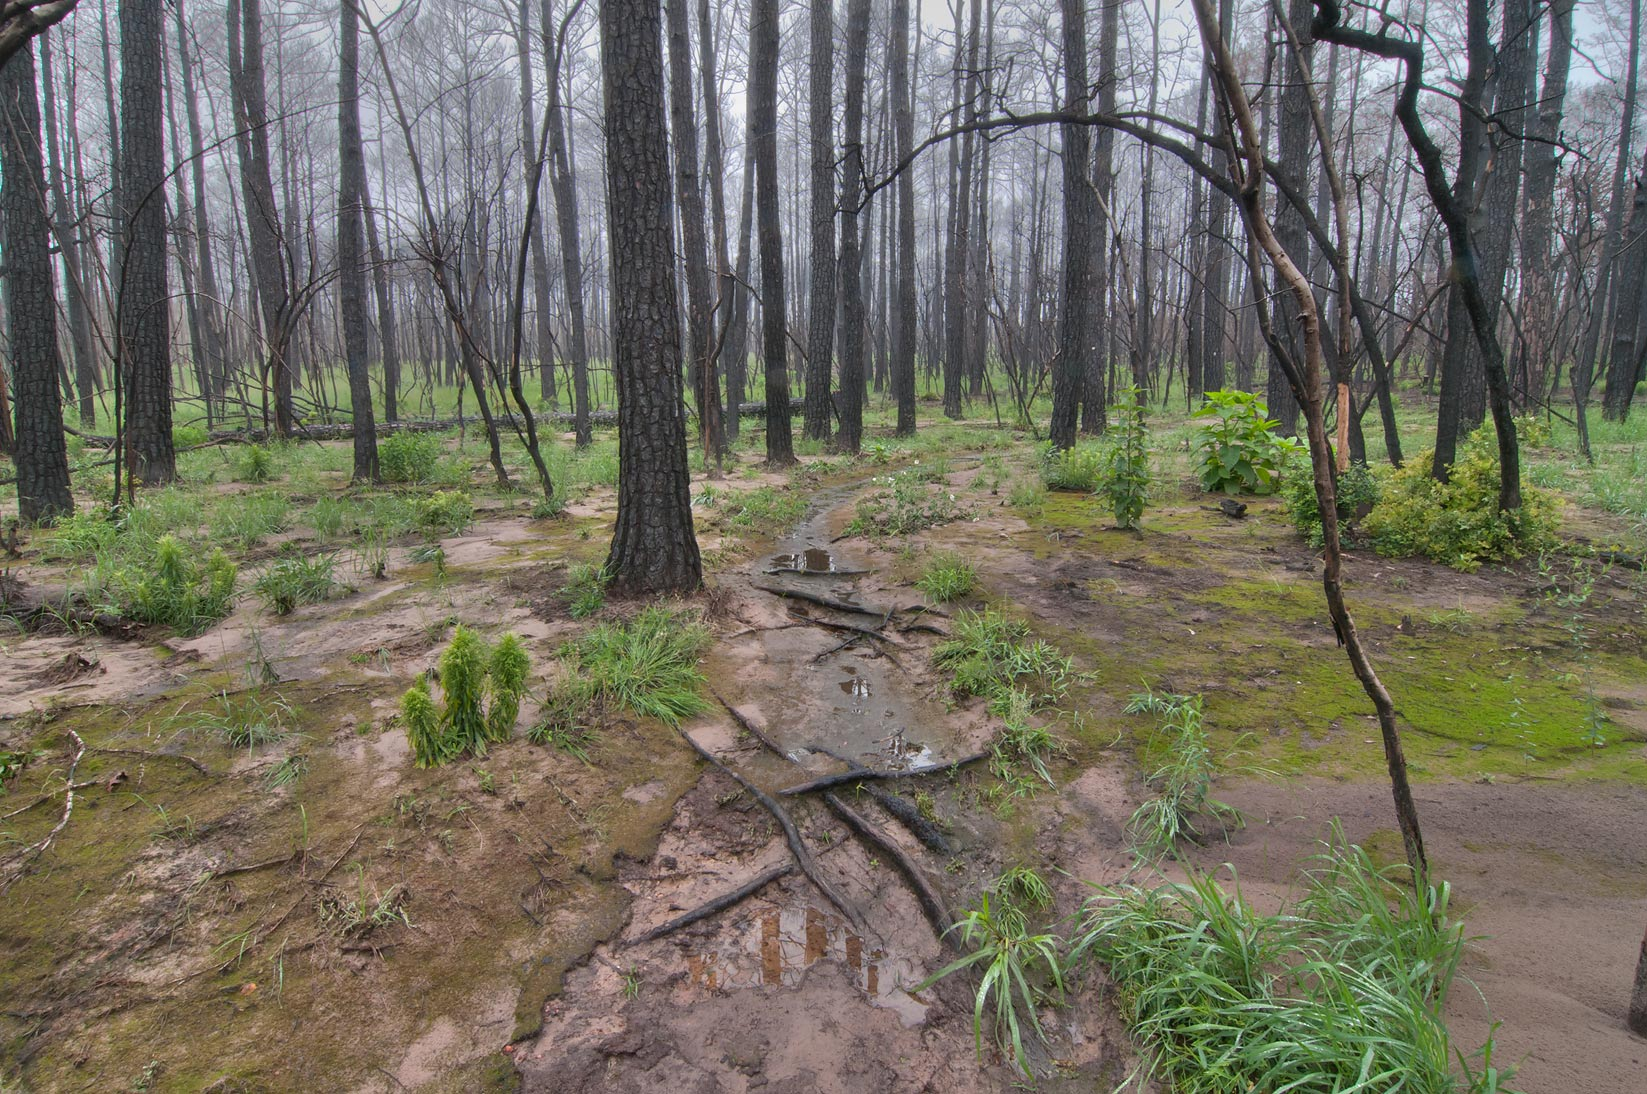 Photo 1053-13: Lost Pines hiking trail in Bastrop State ...